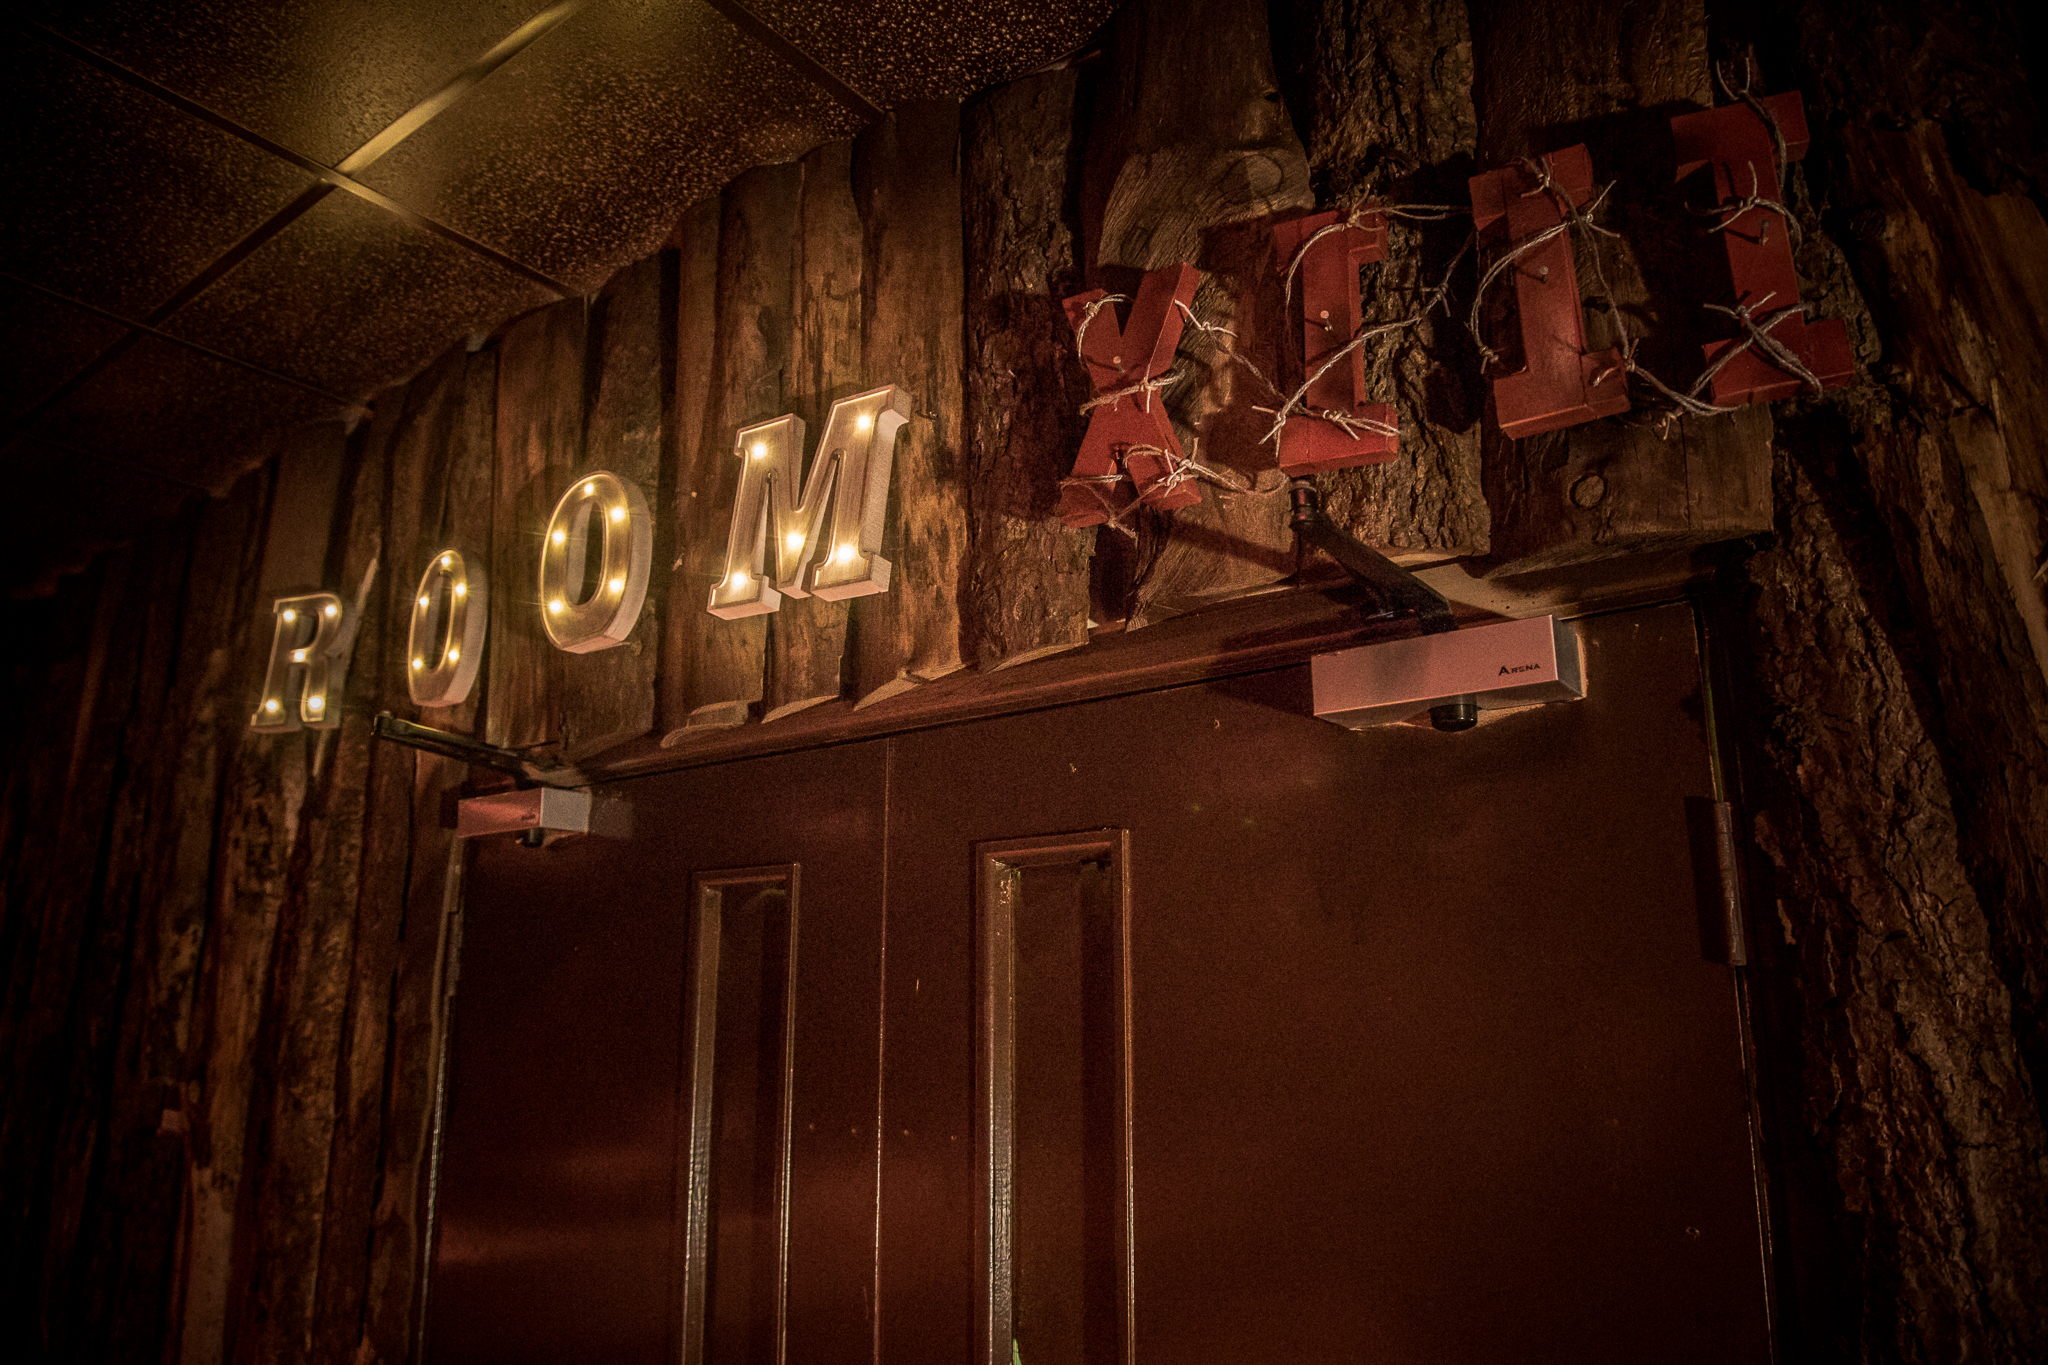 Don't go inside Room 13 at the House of Horror!